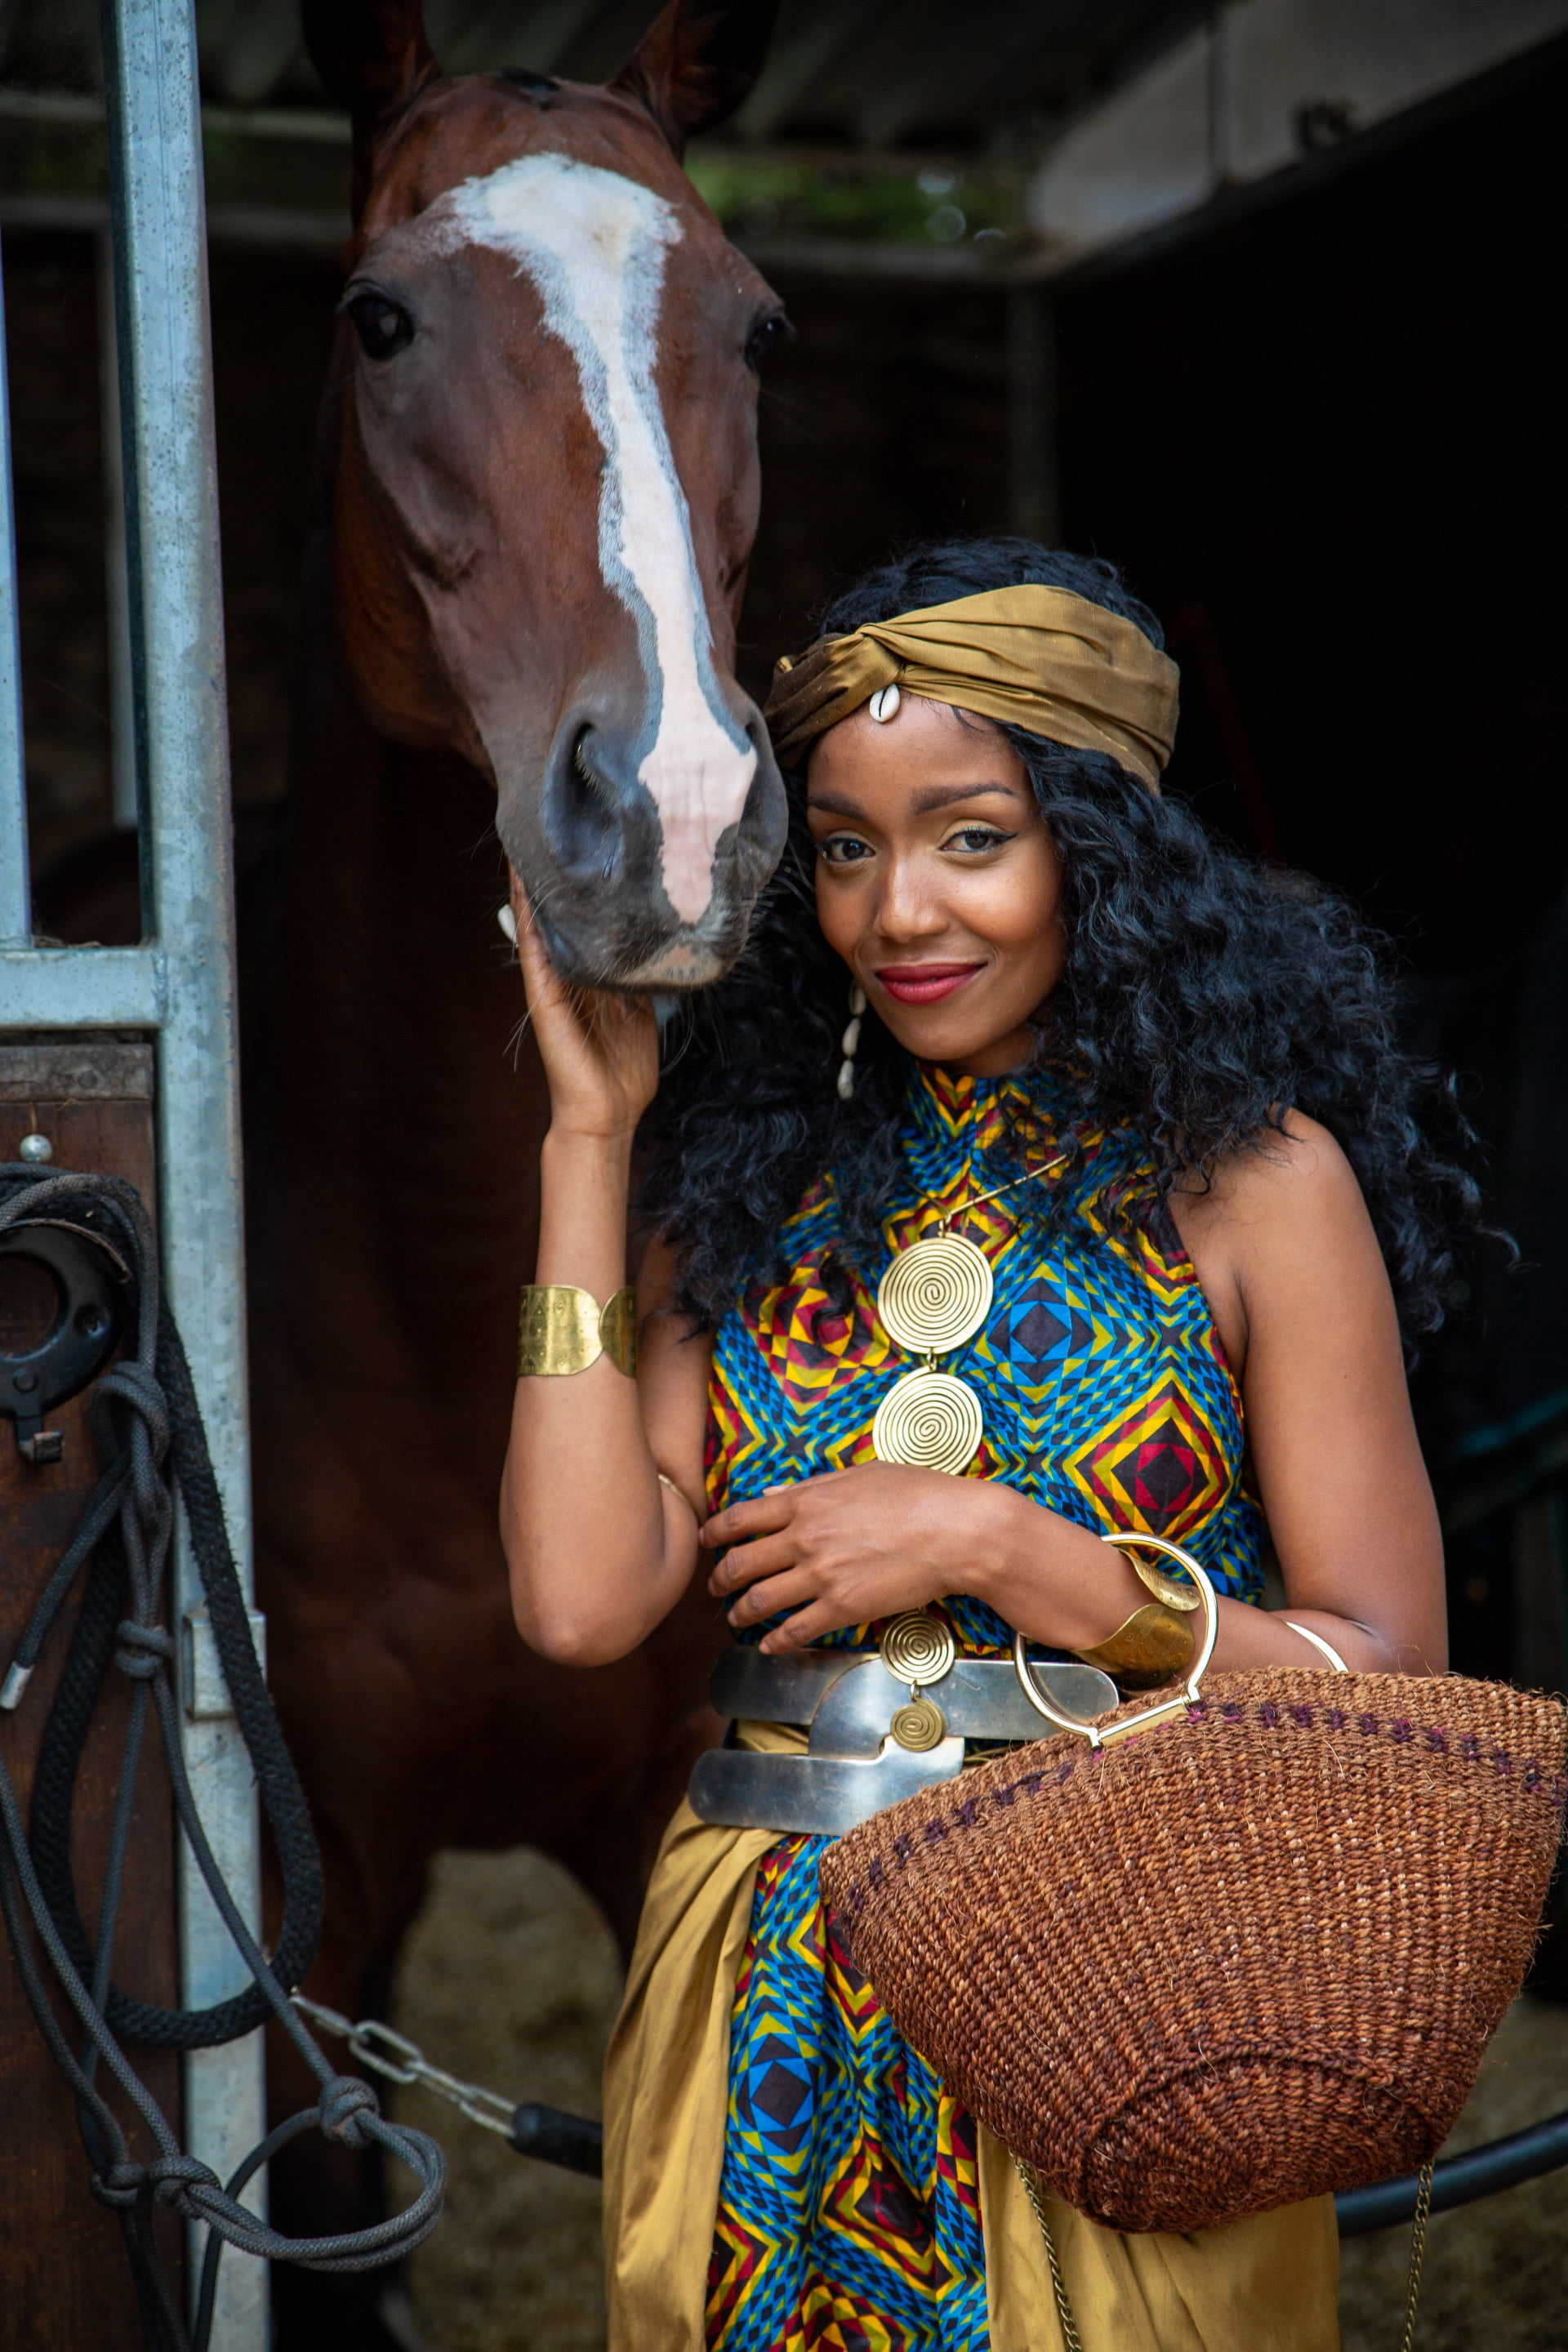 Fashion with Vicky Ngari-Wilson: Working in harmony with nature